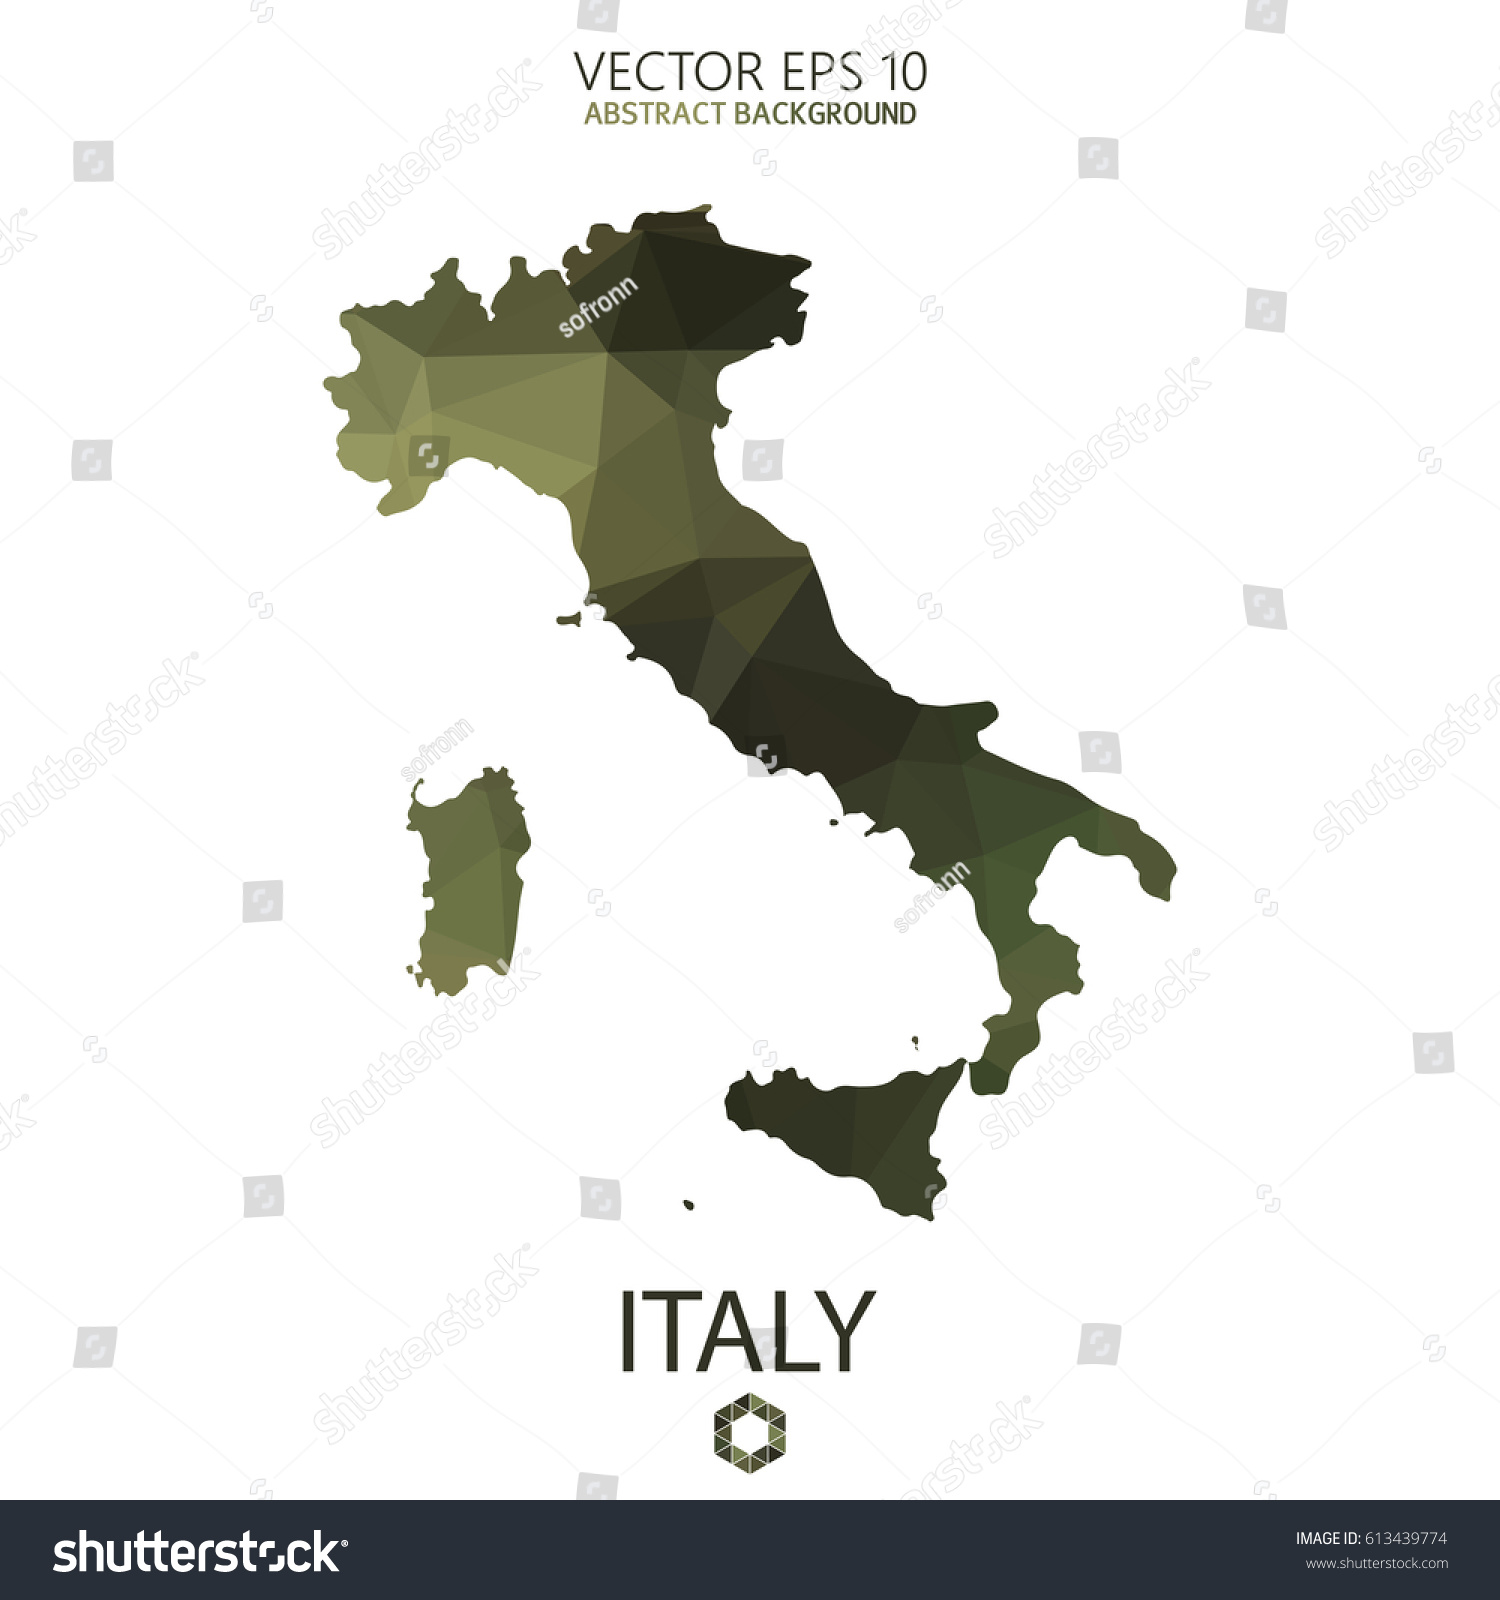 Italy Map Geometric Polygonal Military Style Abstract Stock ...